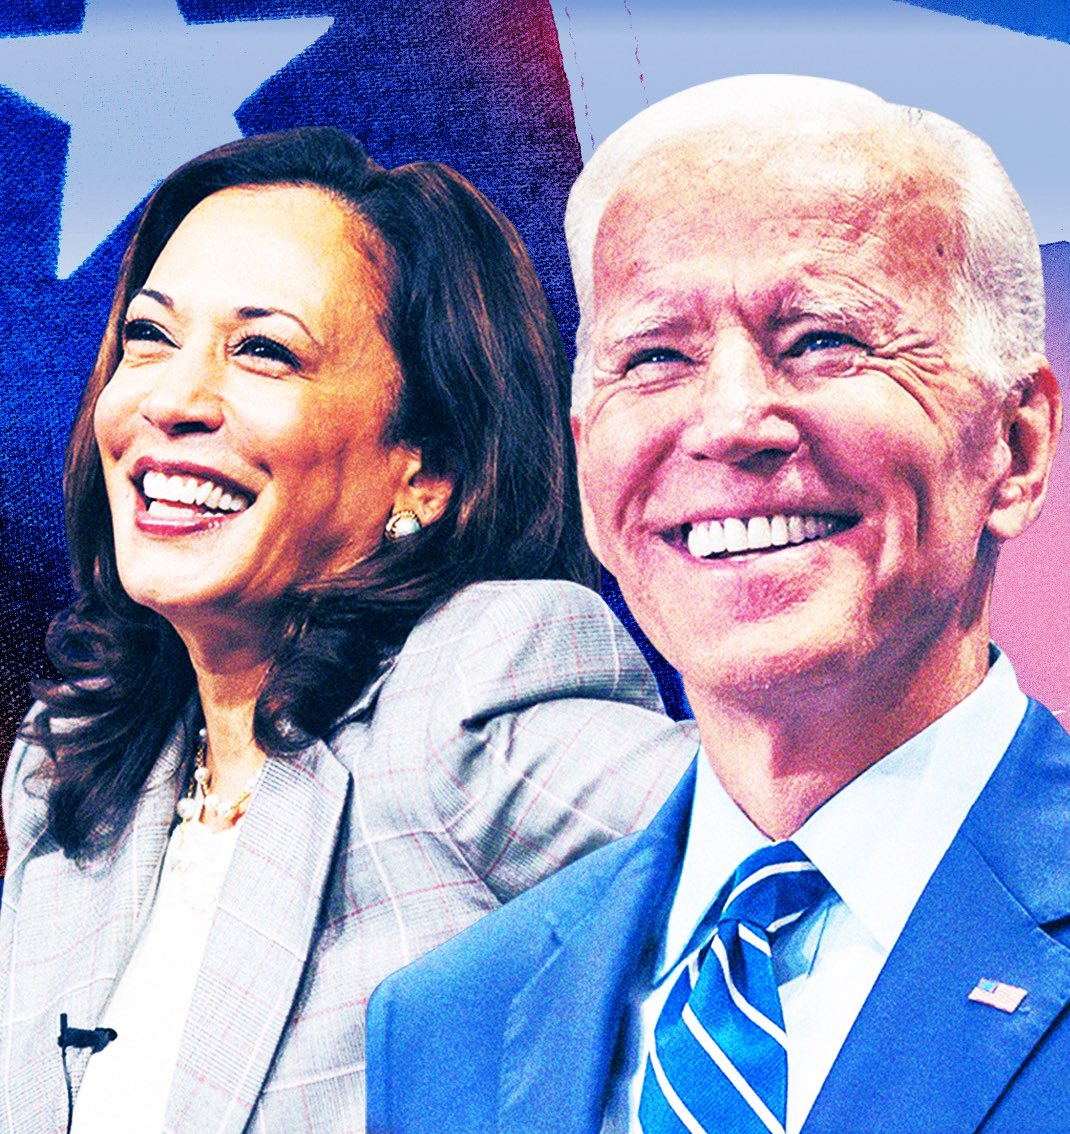 Who else woke up this morning with the feeling there's a little more hope in the air?  That's what President Joe Biden brings.  @POTUS @VP  #KidVicious❤️